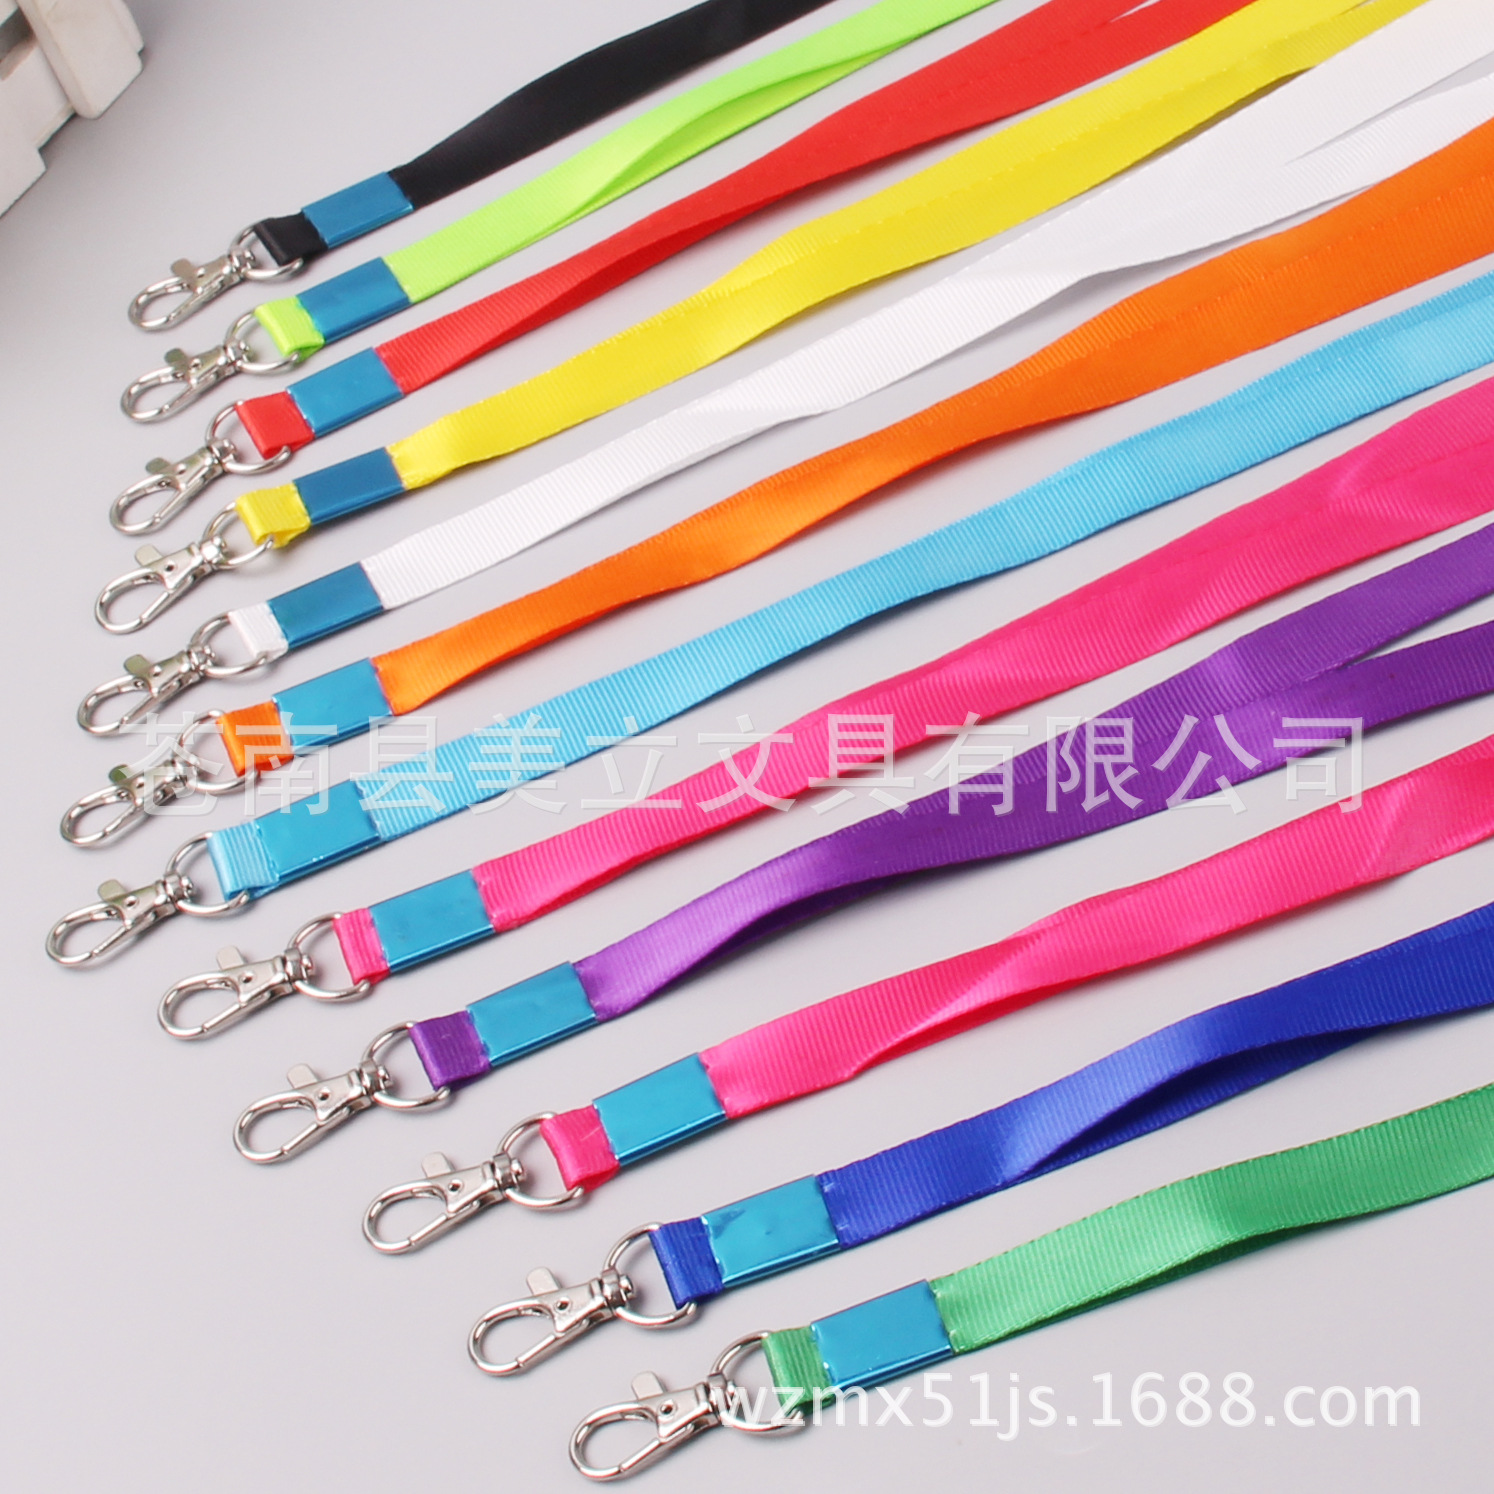 1.5 Cm General Long Xia Gou Documents Lanyard Job Card Lanyard Badge Lanyard Exhibition Work Permit Students Lanyard